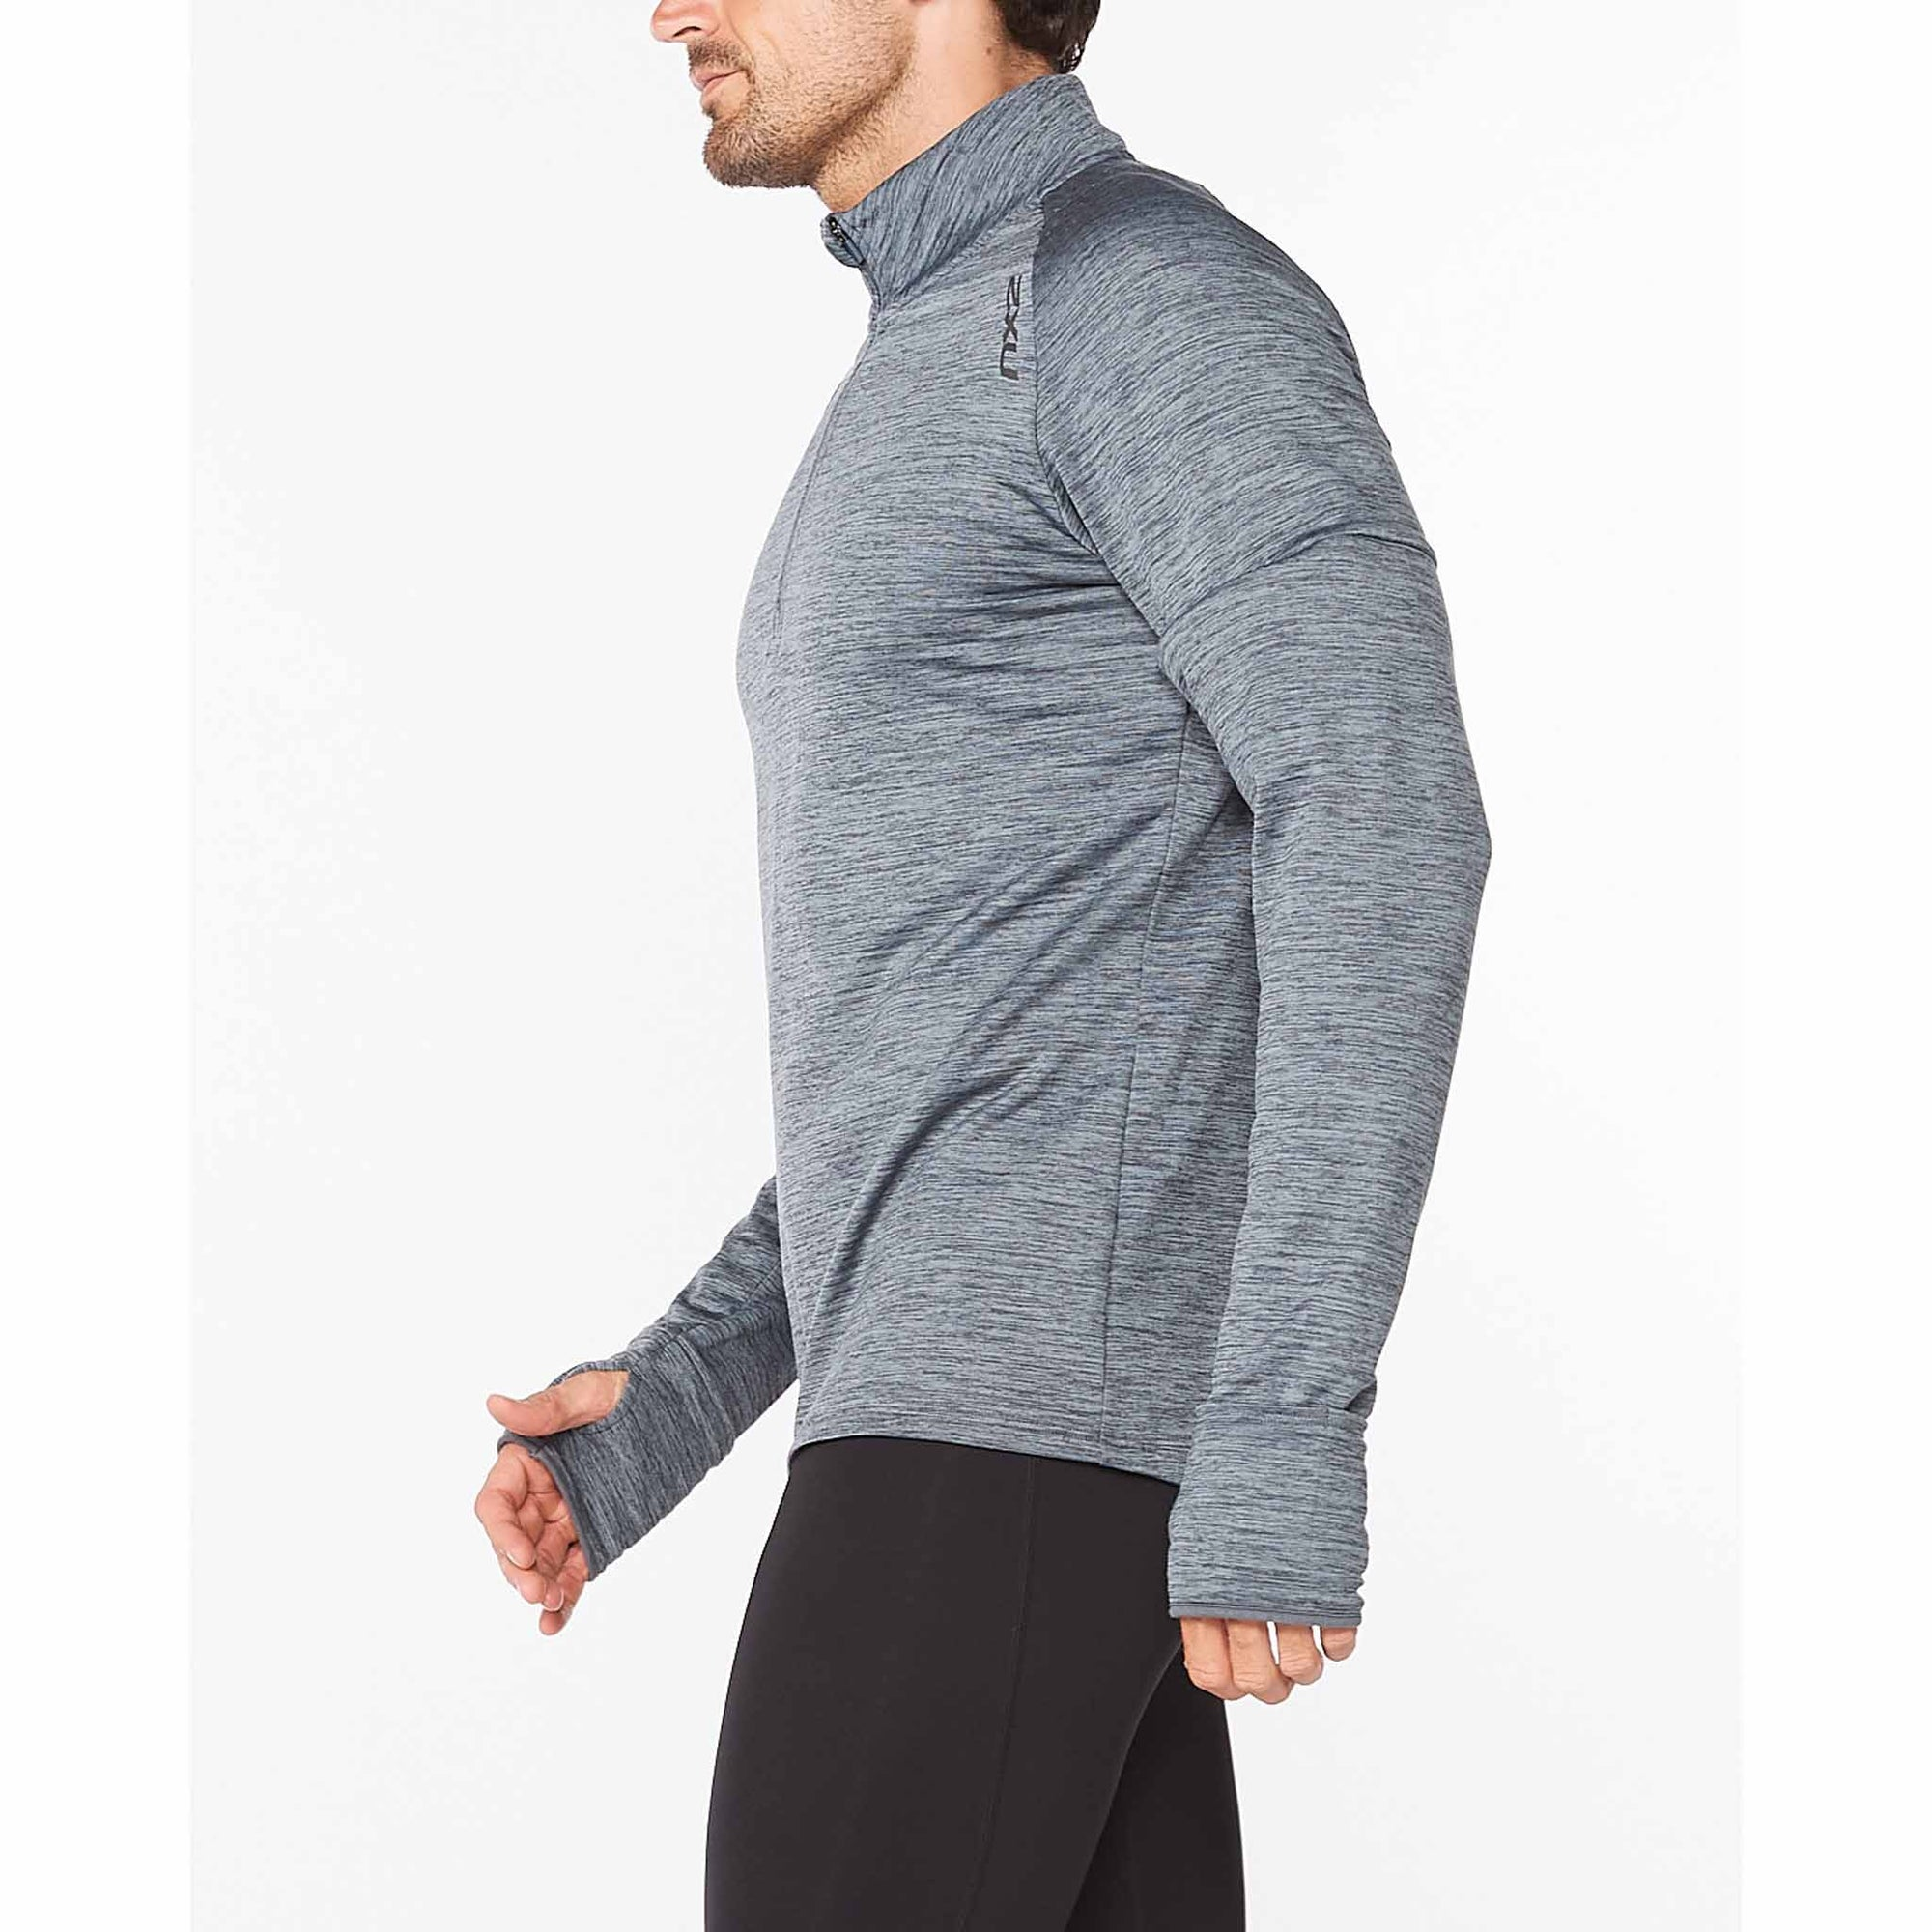 2XU Chandail manches longues Ignition 1/4 Zip pour homme